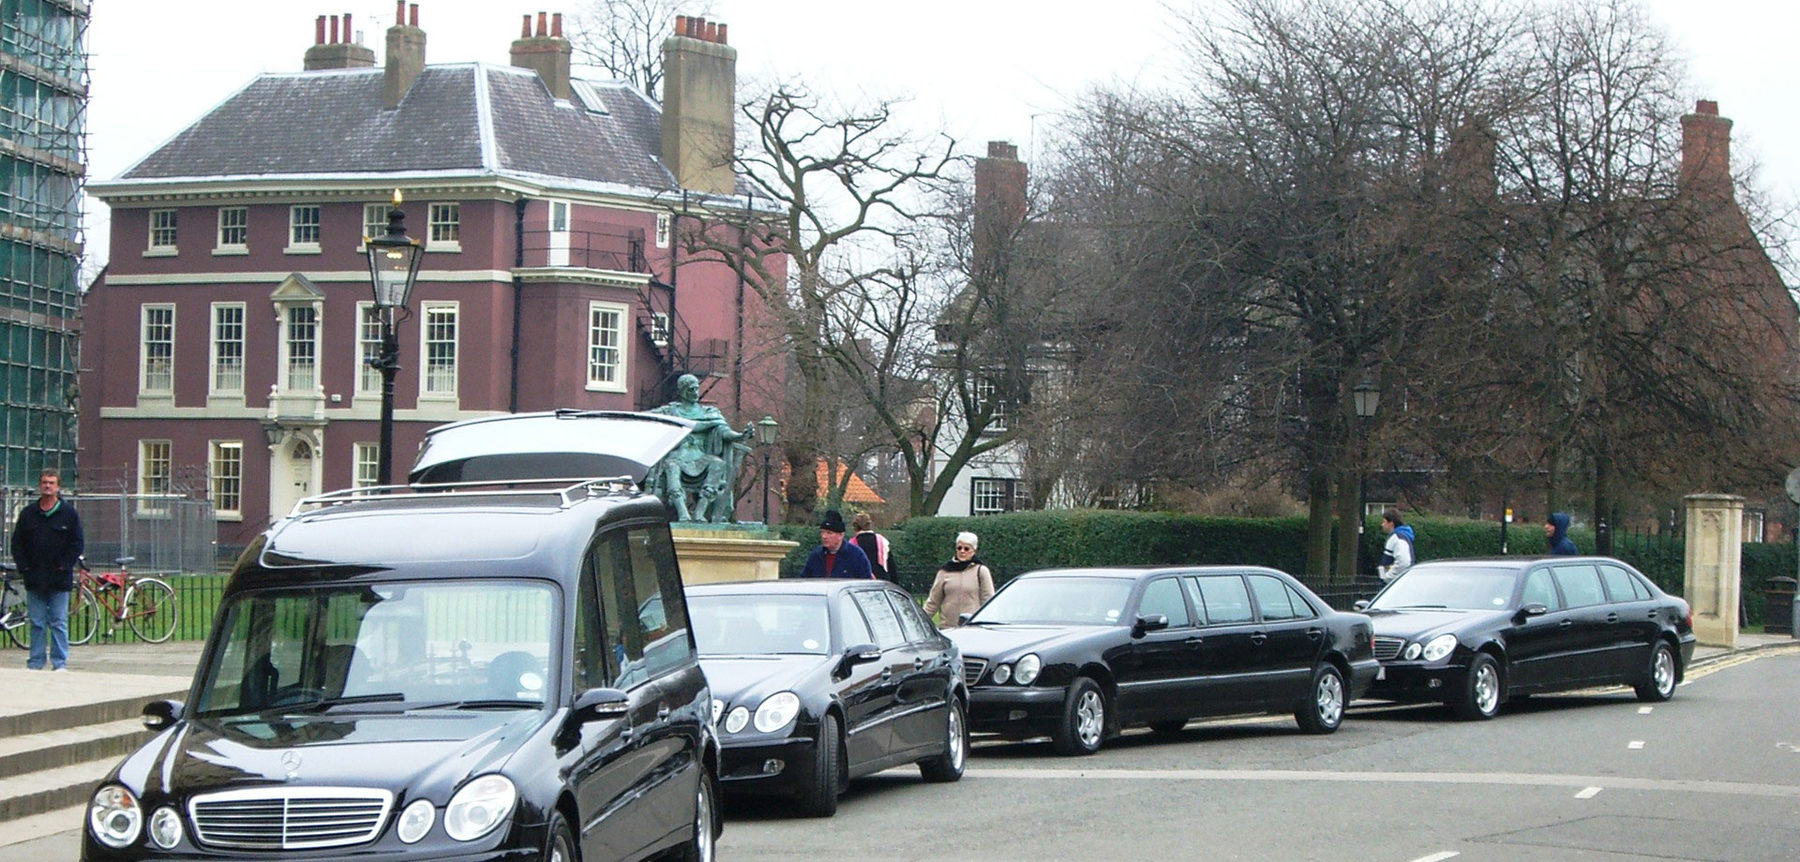 Funeral Services  (Sector Header: Funeral Vehicles)